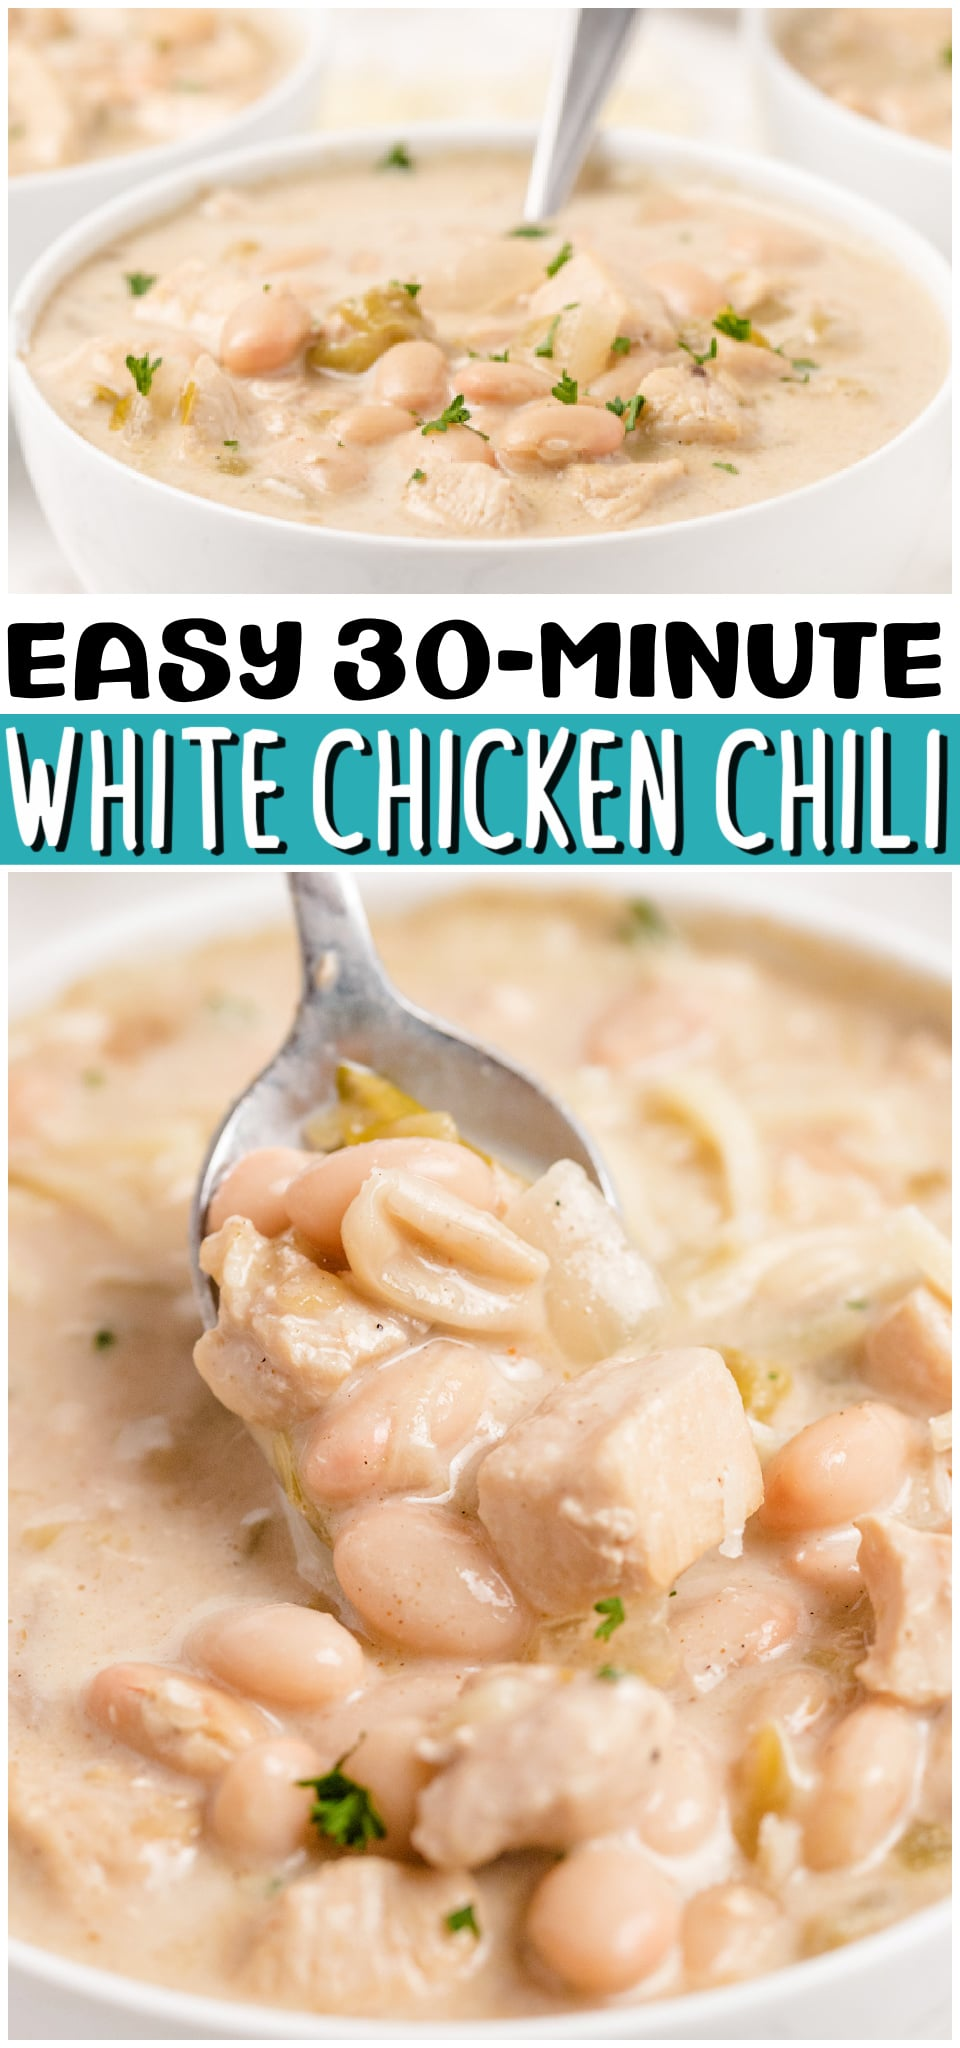 White Chicken Chili is a delicious & comforting meal packed with white beans, chicken, and green chilies. Takes only 30 minutes from start to finish! #chili #chicken #beans #dinner #easyrecipe from BUTTER WITH A SIDE OF BREAD